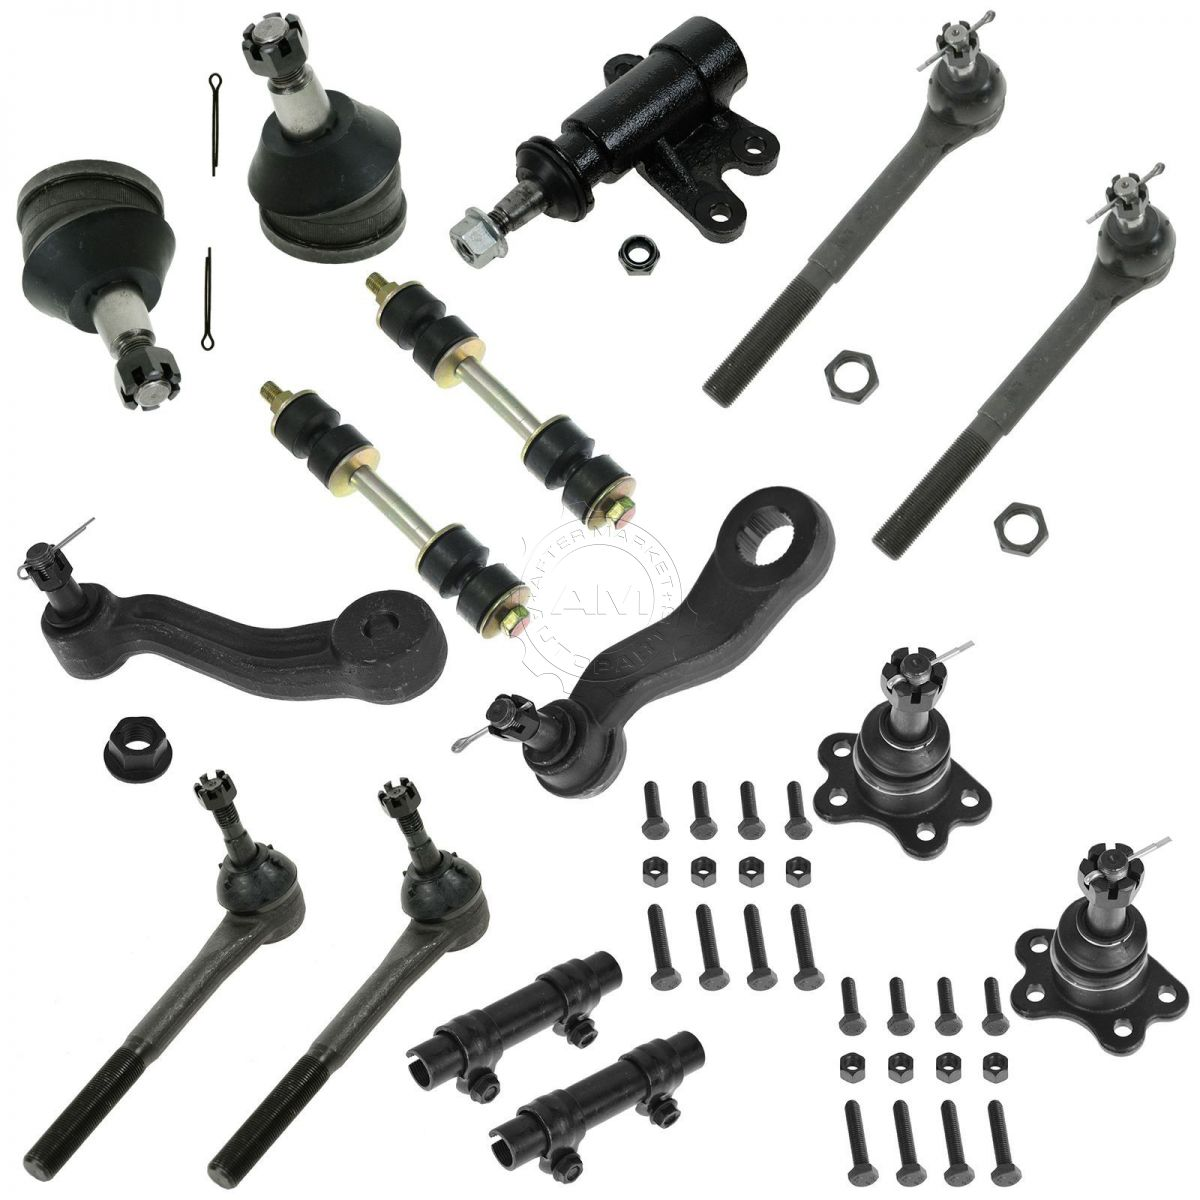 15 Piece Front Kit Ball Joint Sway Bar Tie Rid Idler Pitman Arm for Chevy GMC